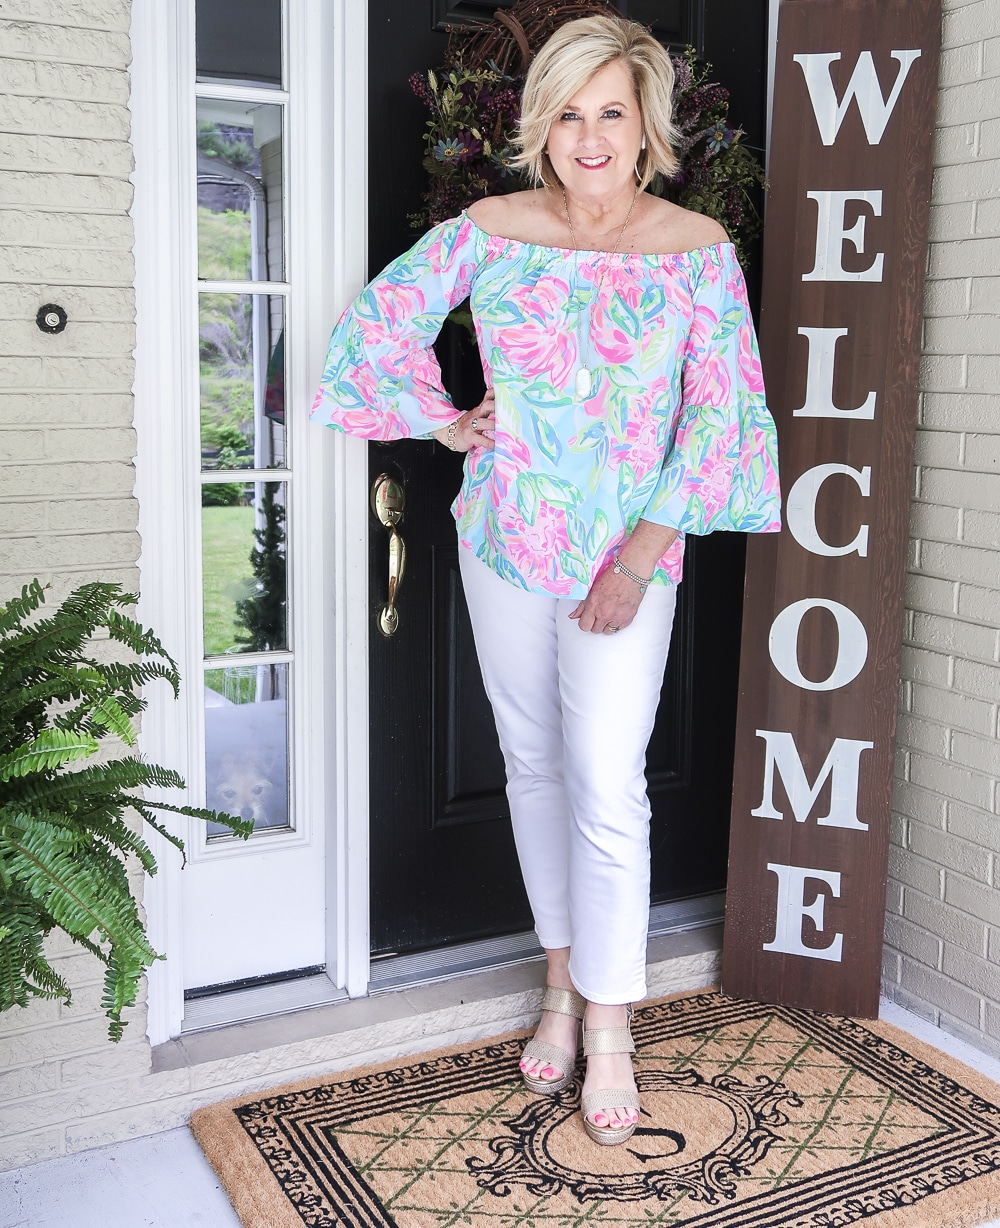 Fashion Blogger 50 Is Not Old wearing a colorful off the shoulder top from Lilly Pulitzer and white crop jeans with gold espadrilles